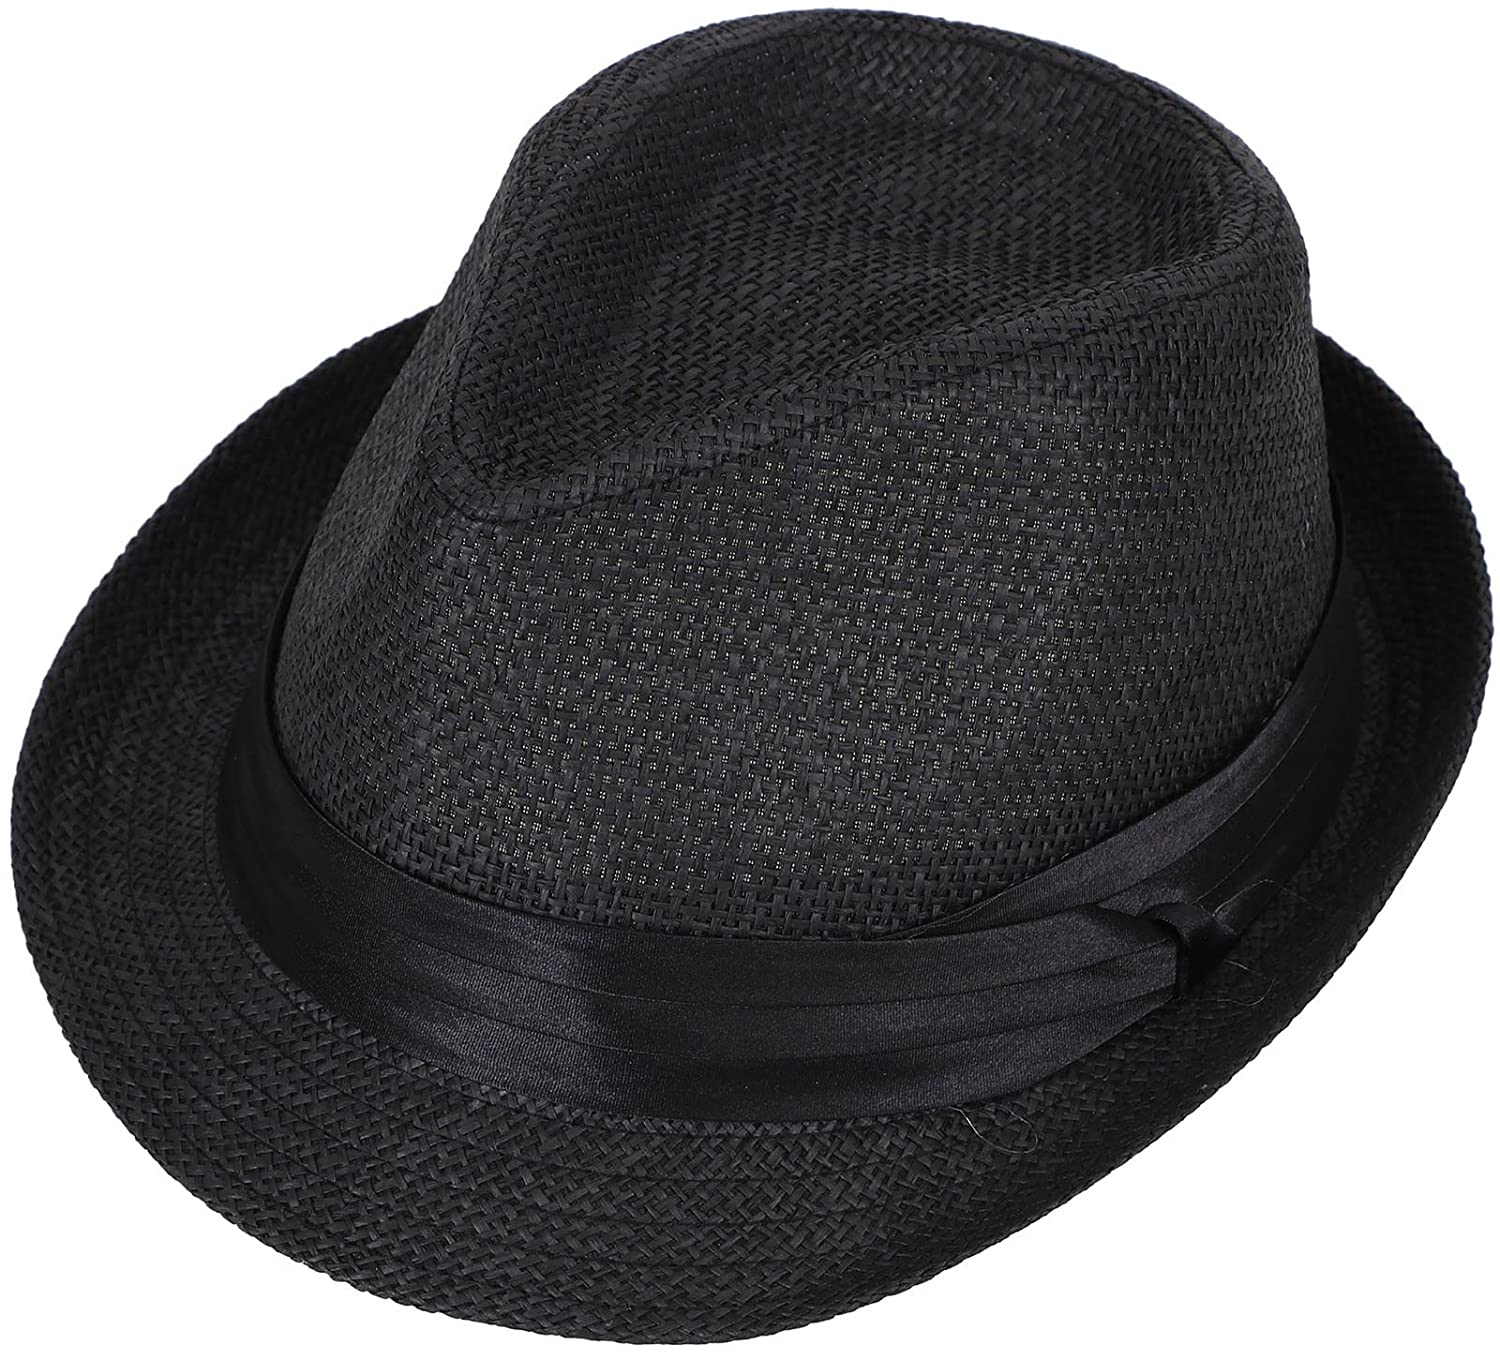 AshopZ Unisex Summer Outdoors Short Brim Straw Fedora Hat